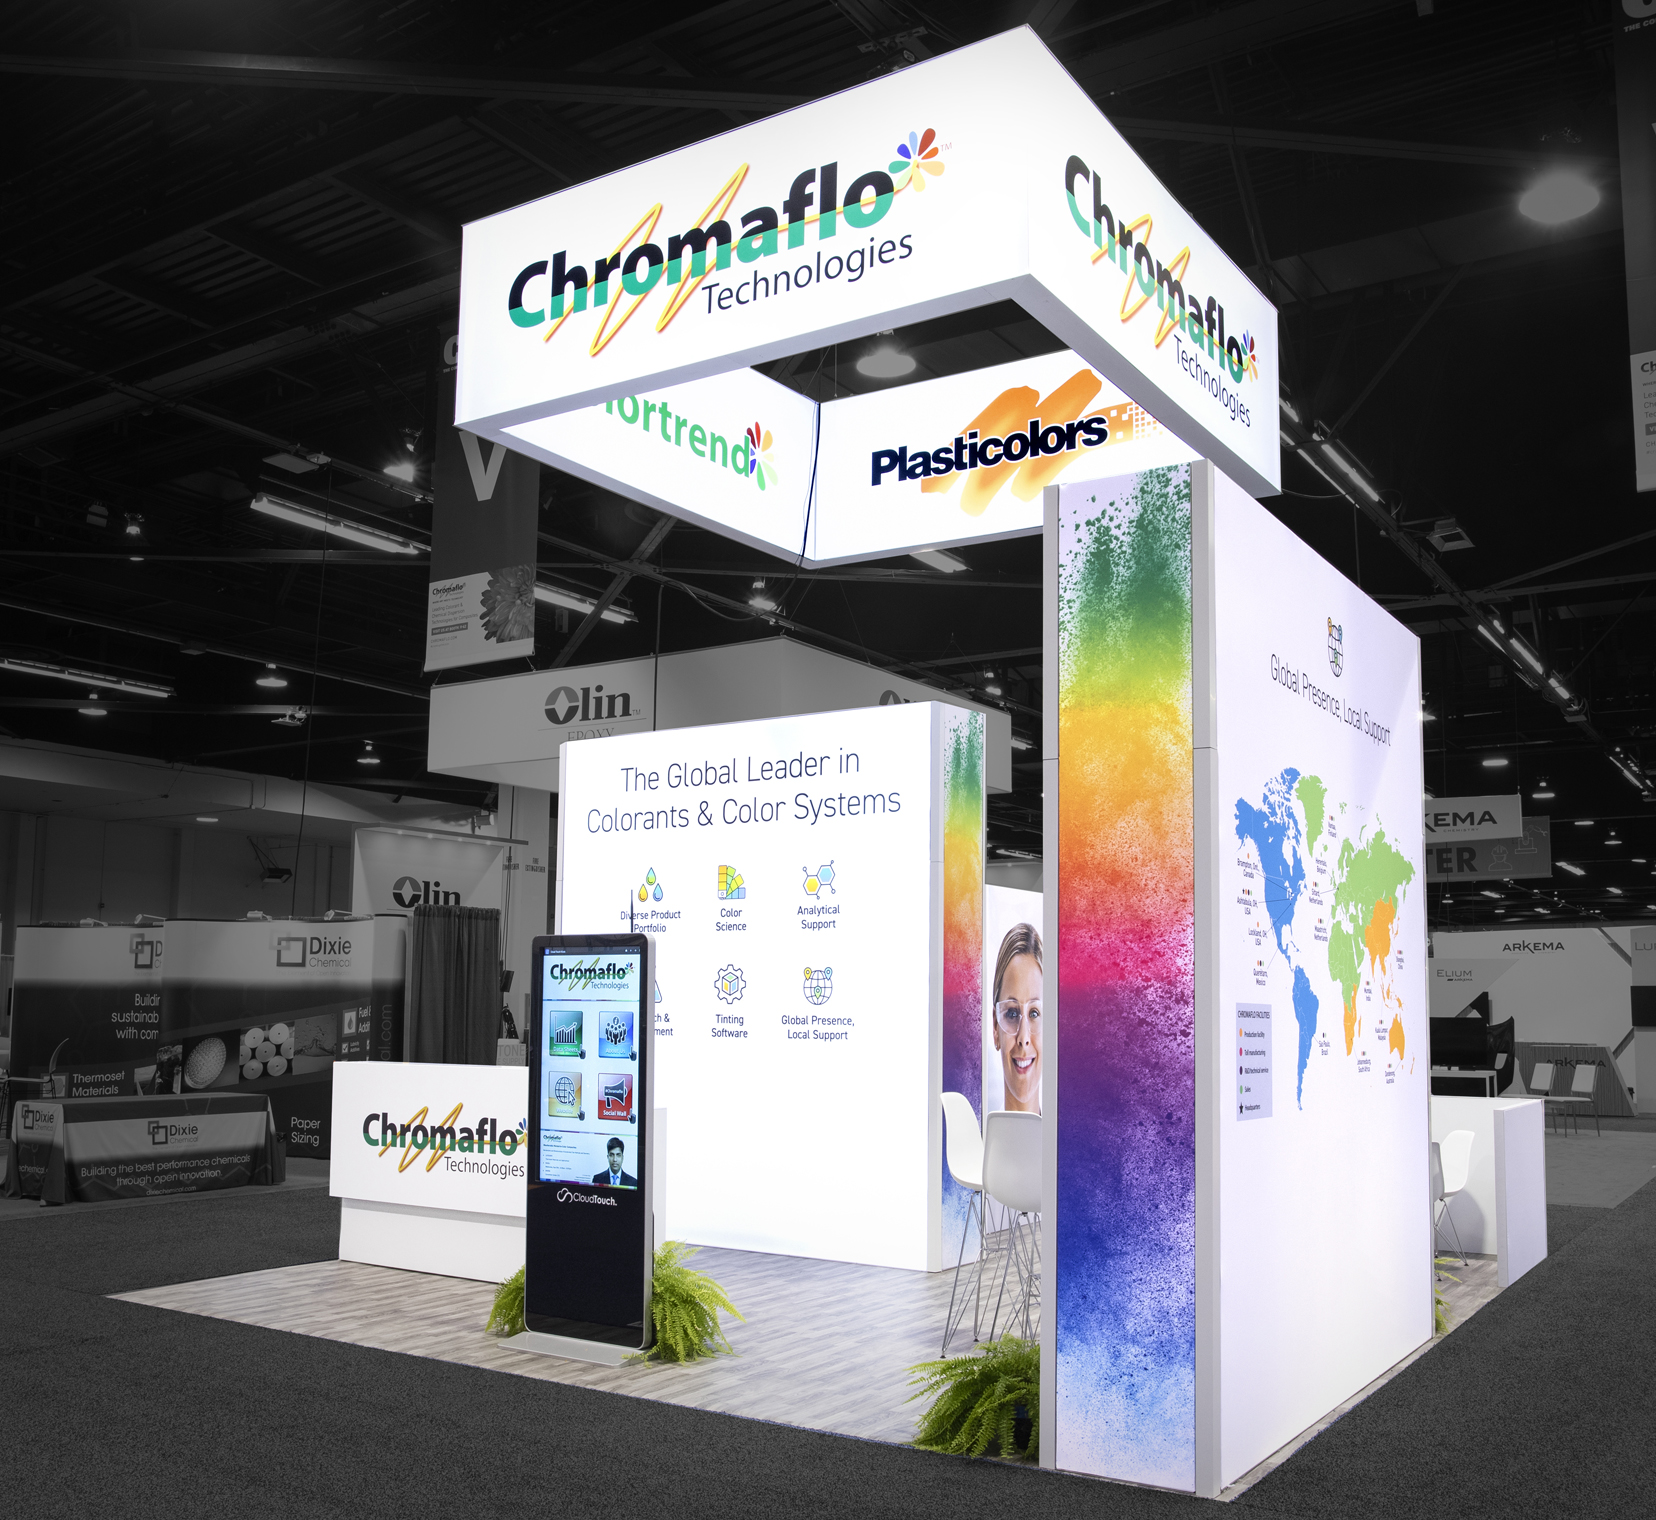 Chromaflo Technologies showed off thier bold, bright colors in their 20x20 island booth.